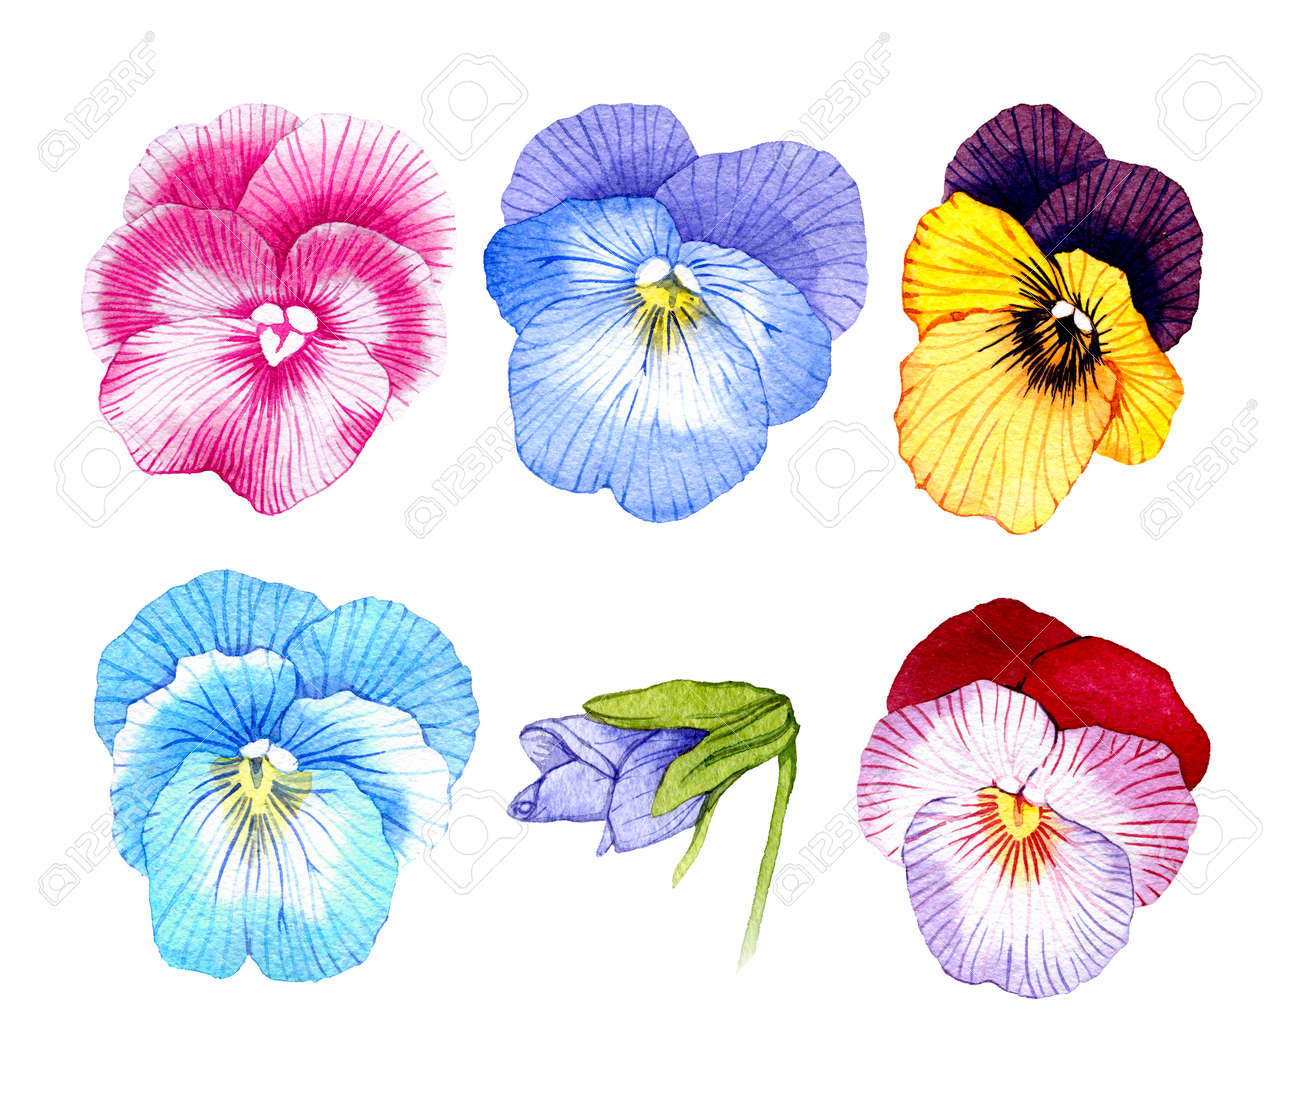 Hand Drawn Watercolor Pansy Flower Set Stock Photo Picture And Royalty Free Image Image 97630715